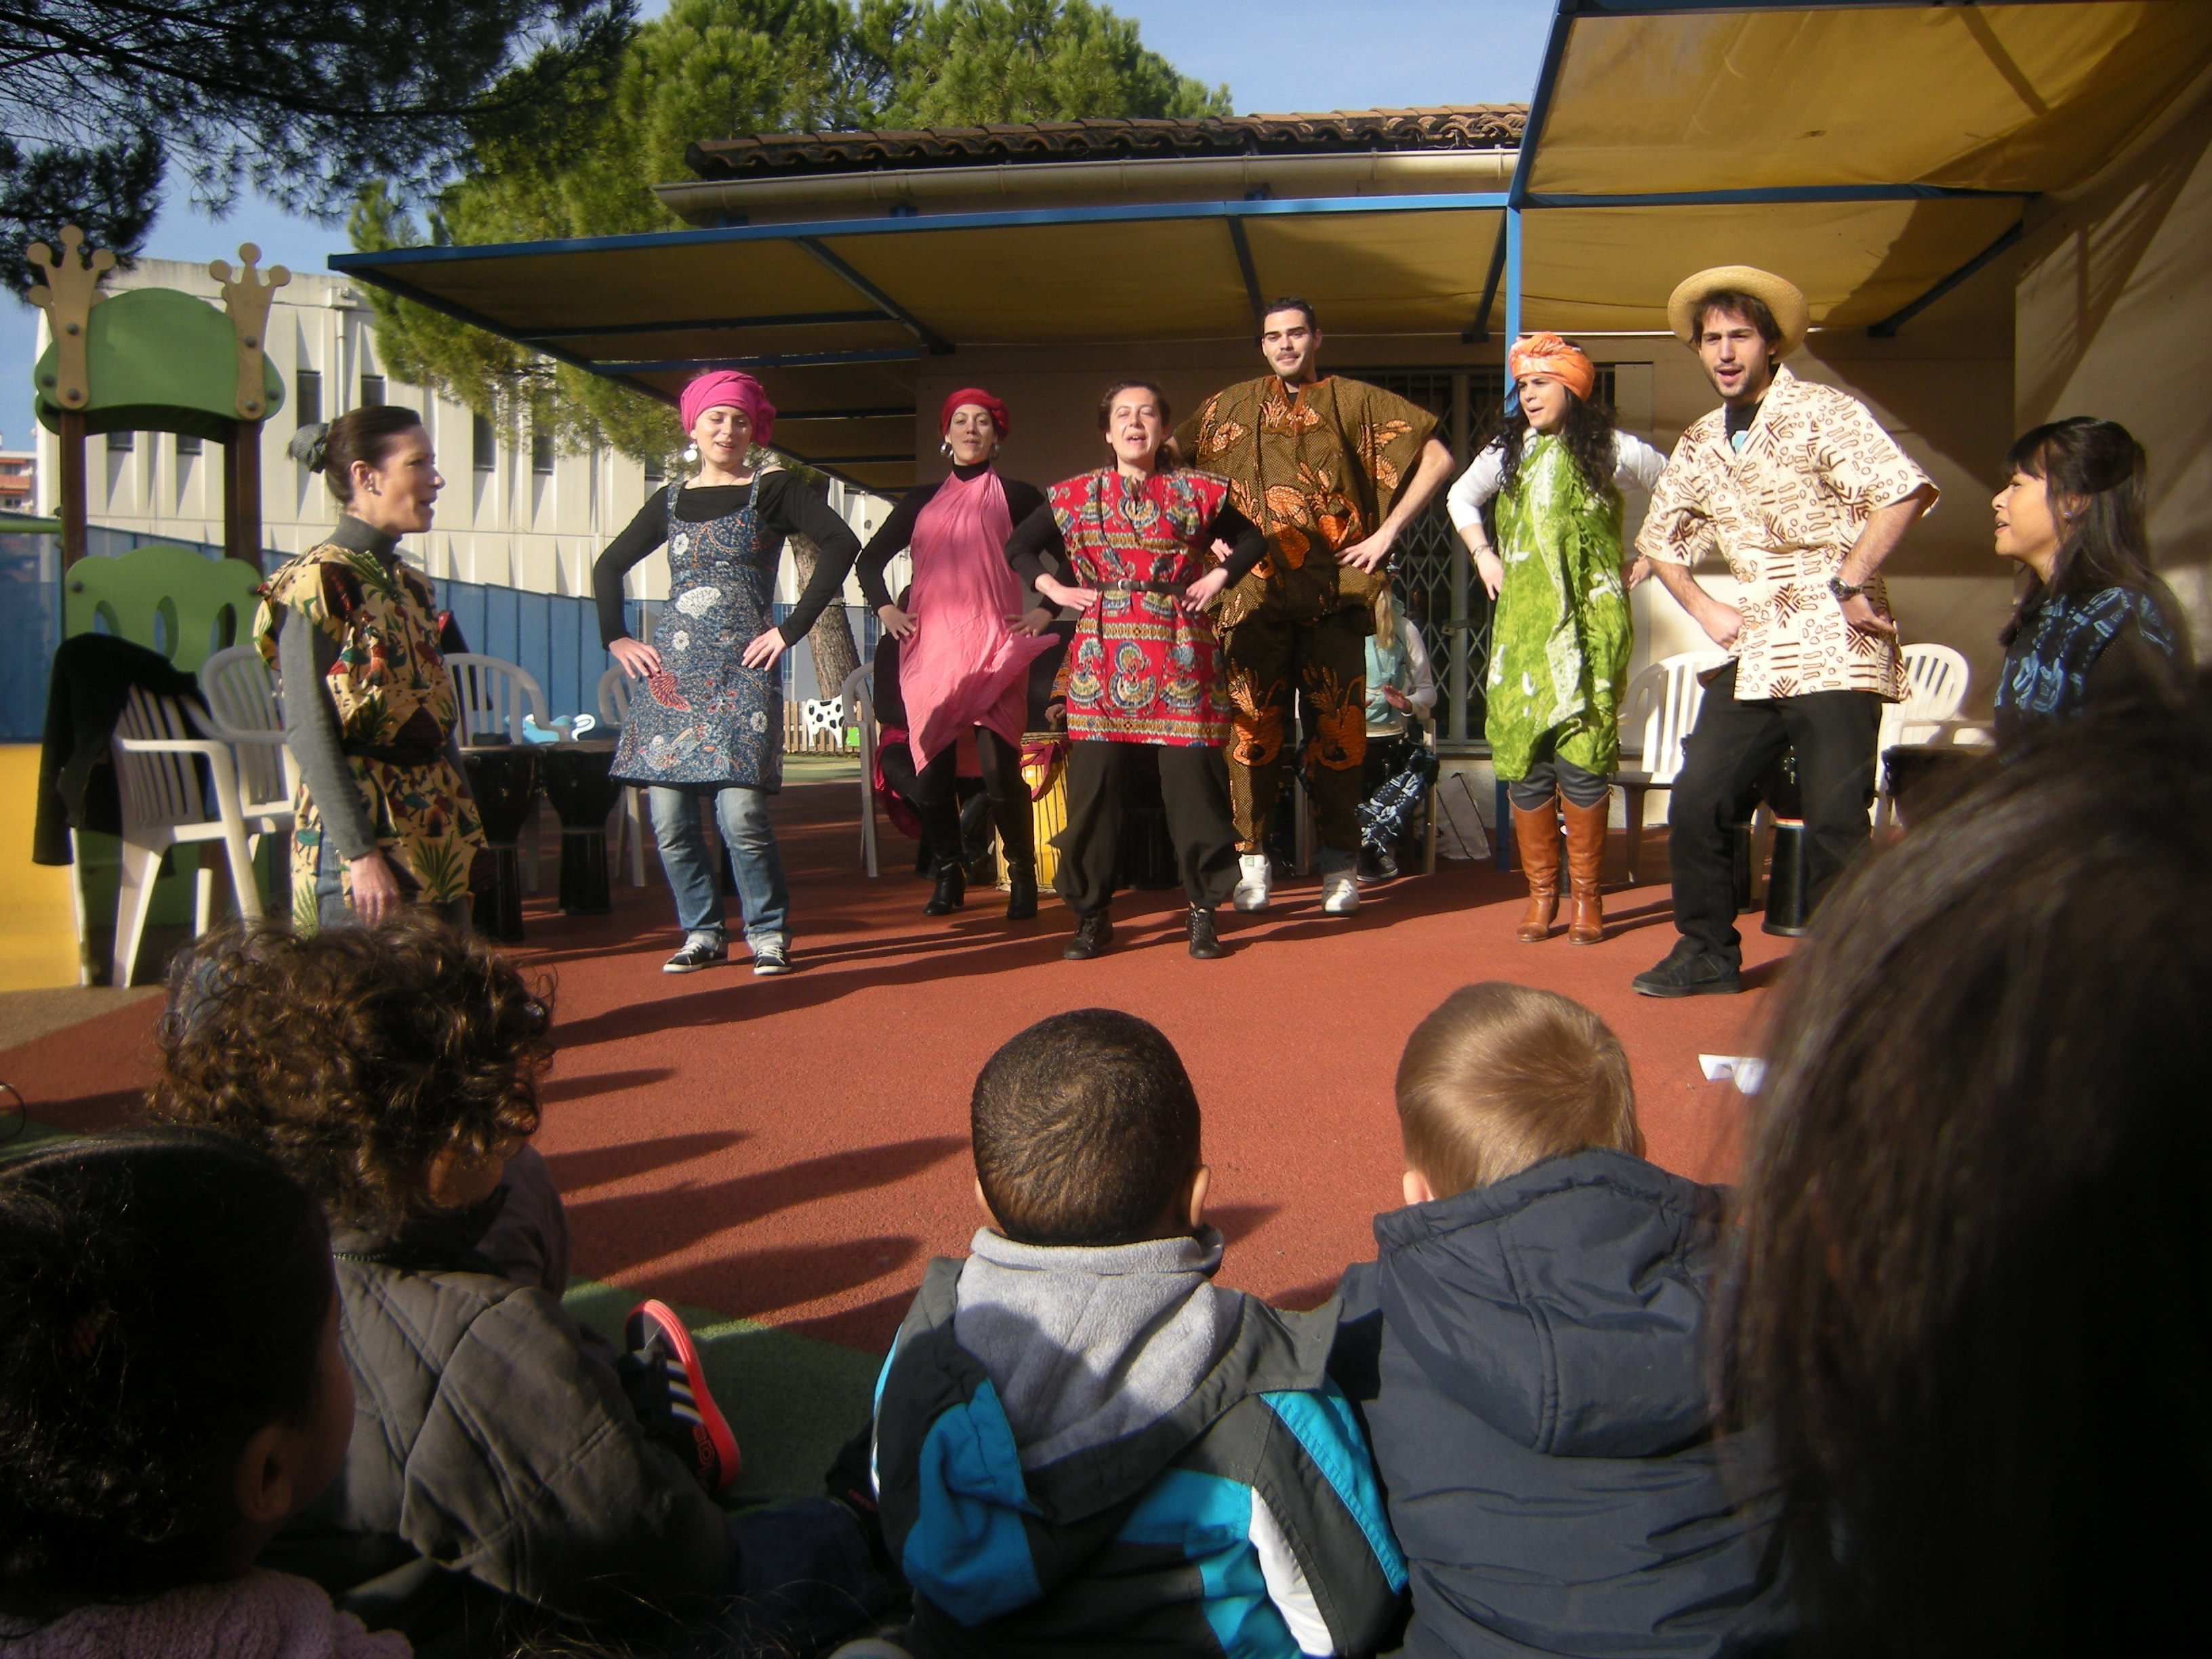 spectacle stagiaires